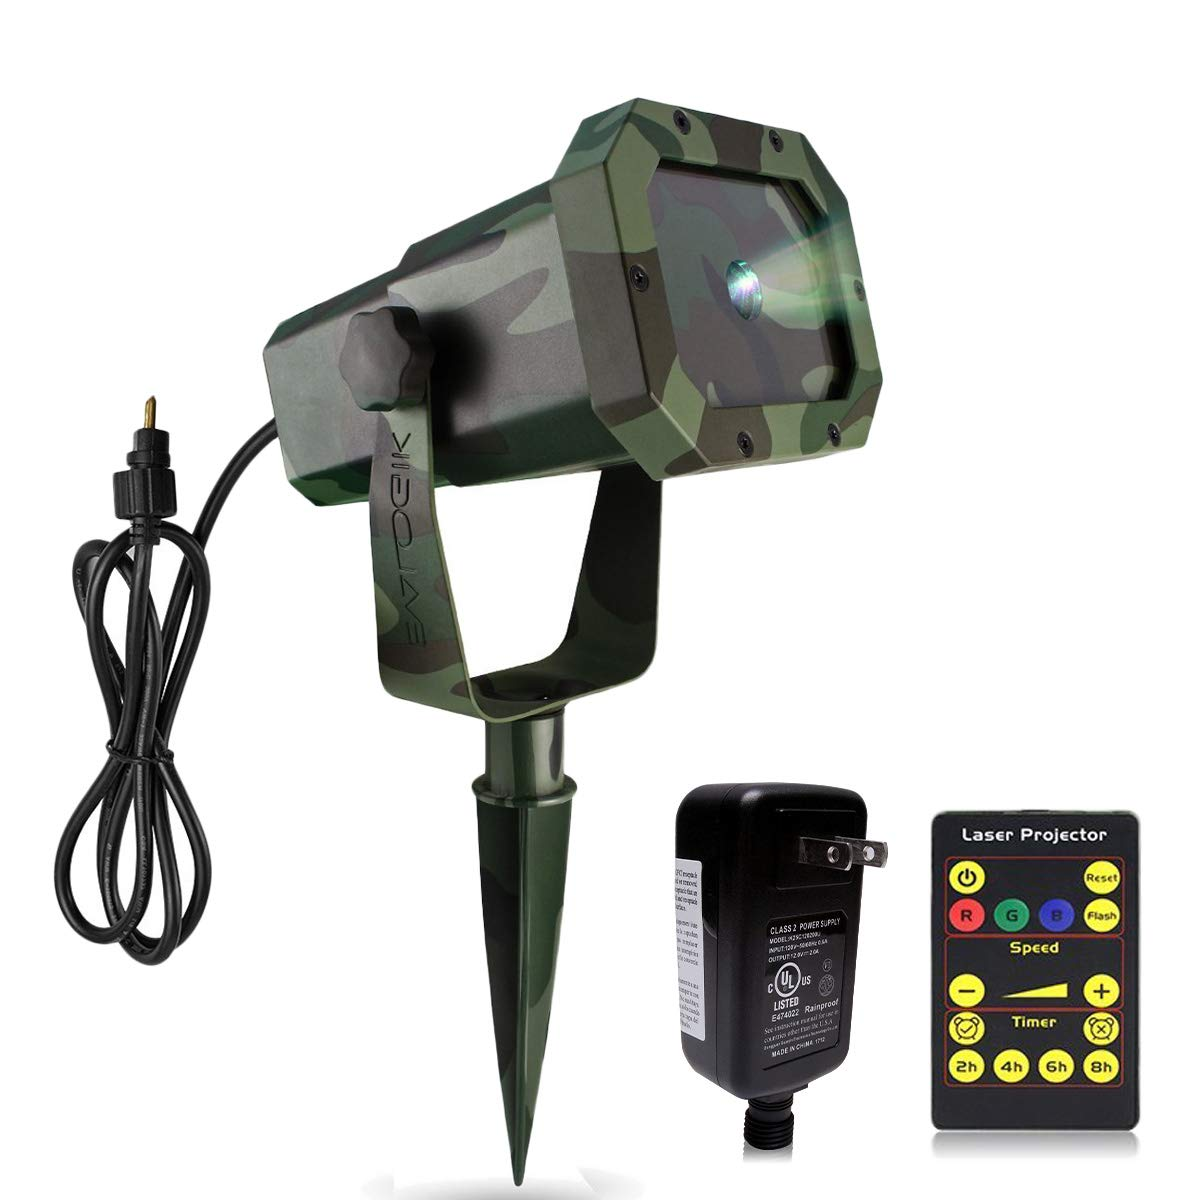 EVA LOGIK Outdoor Waterproof Laser Projector Light, Moving RGB 20 Patterns, with RF Remote Control and Timer, Perfect for Lawn, Party, Garden Decoration by EVA LOGIK